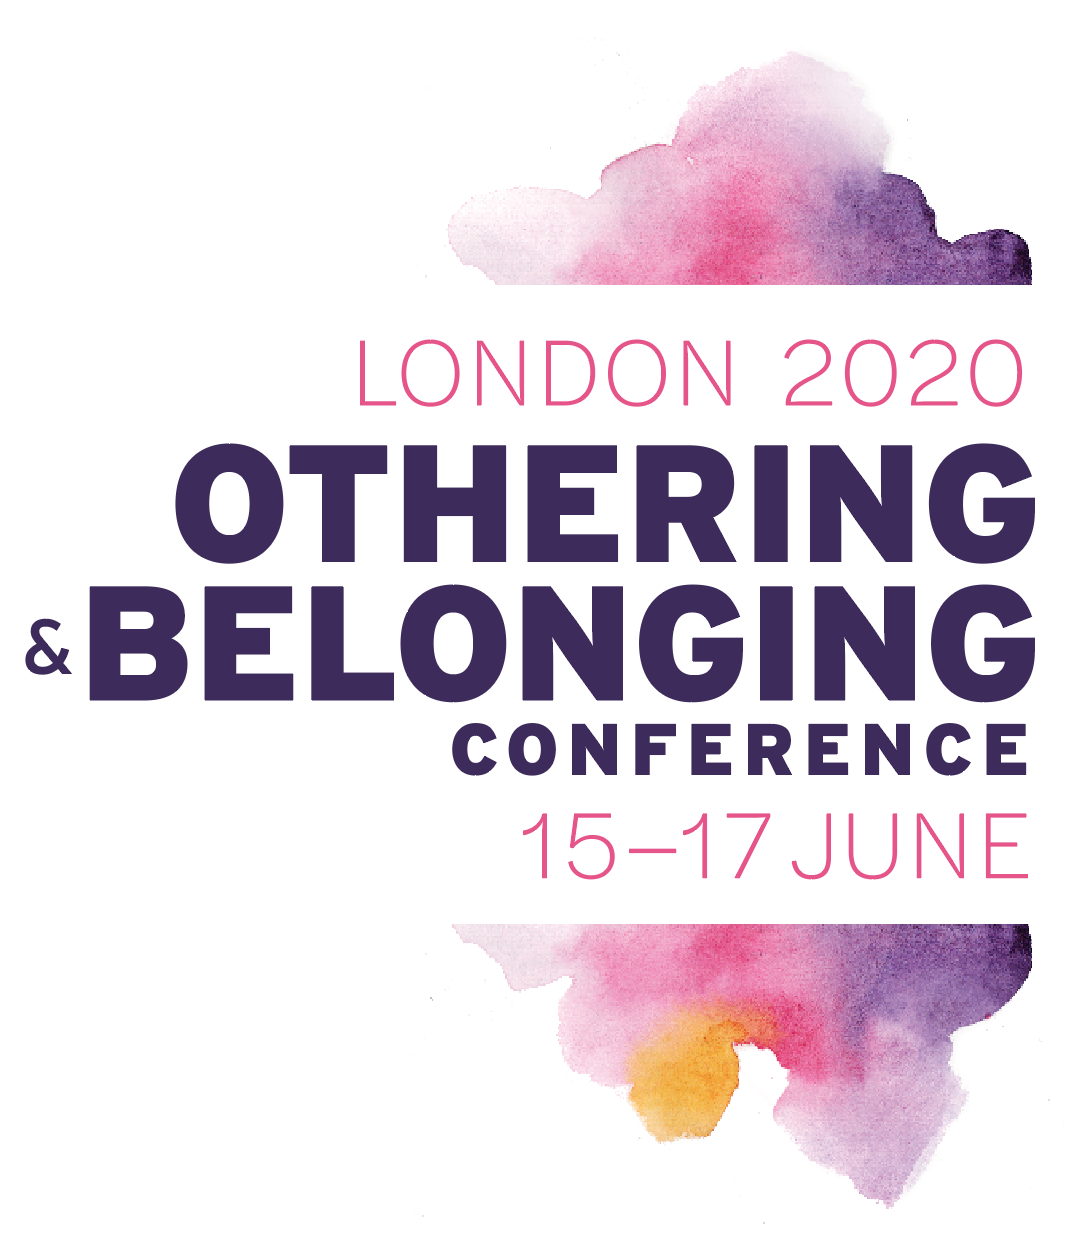 """Color watercolor logo with words that read """"London 2020: Othering & Belonging Conference"""" 15-17 June"""